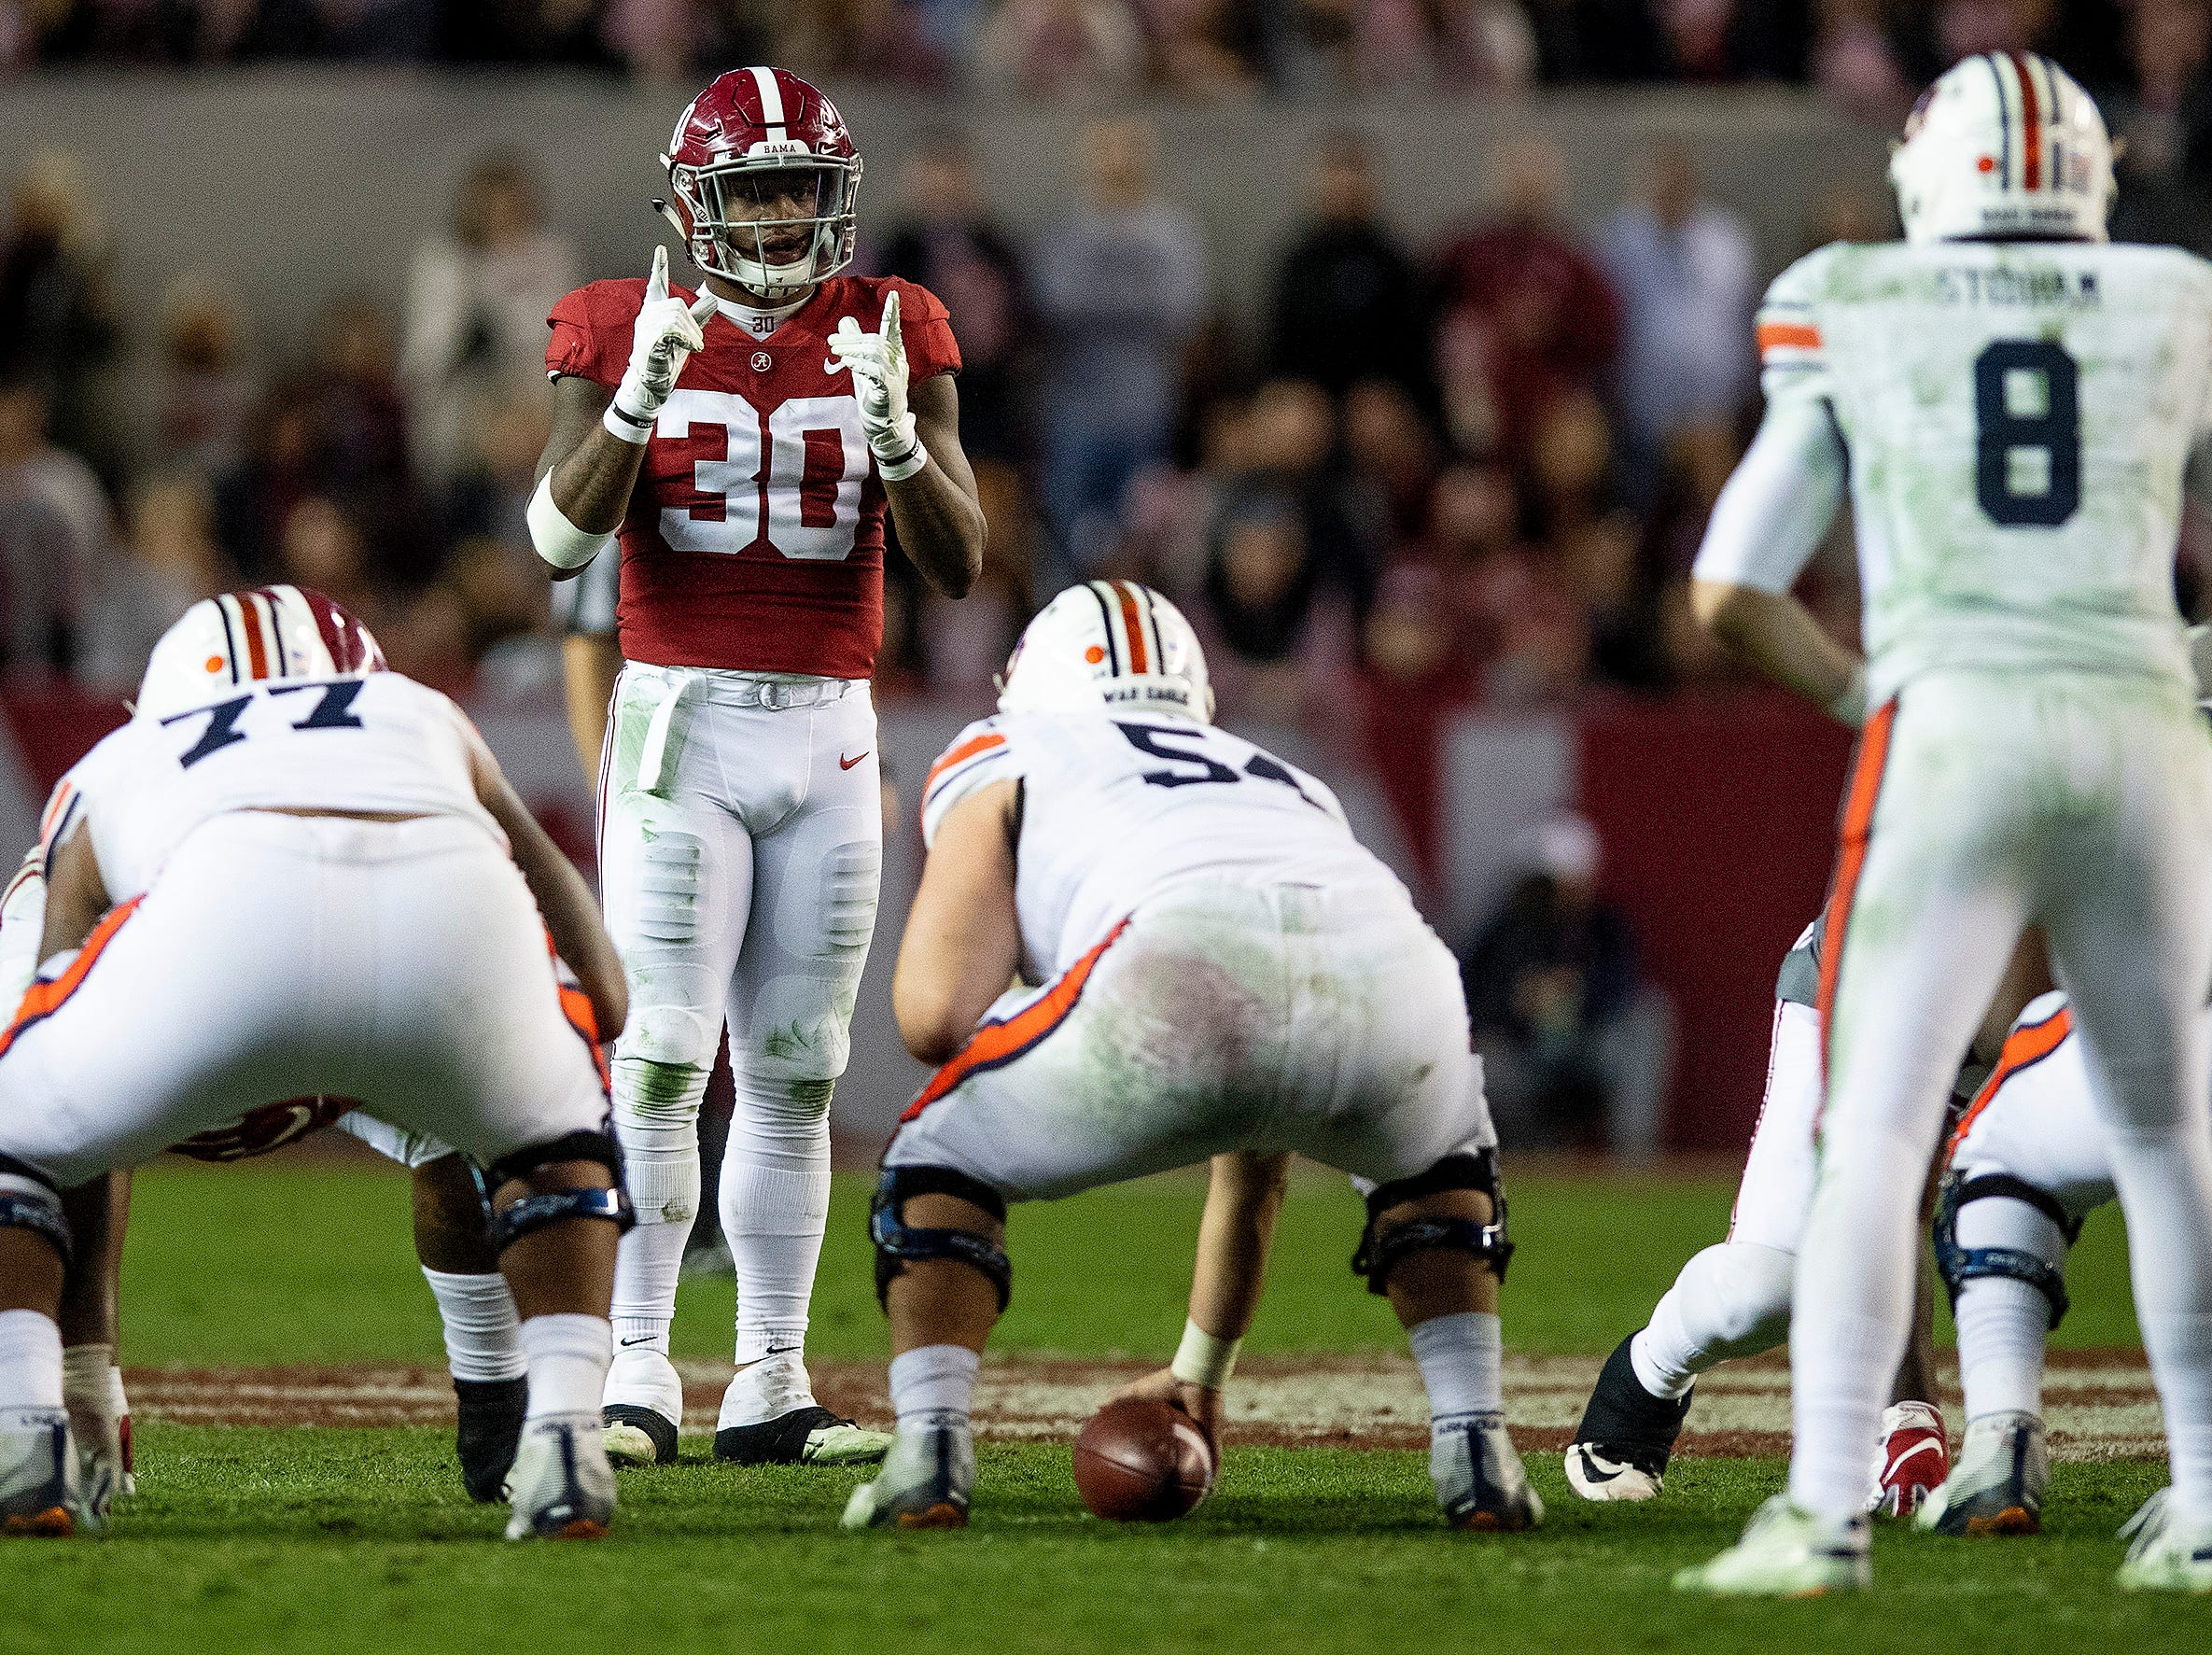 Alabama linebacker Mack Wilson (30) directs the defense against Auburn in second half action during the Iron Bowl at Bryant-Denny Stadium in Tuscaloosa, Ala., on Saturday November 24, 2018.